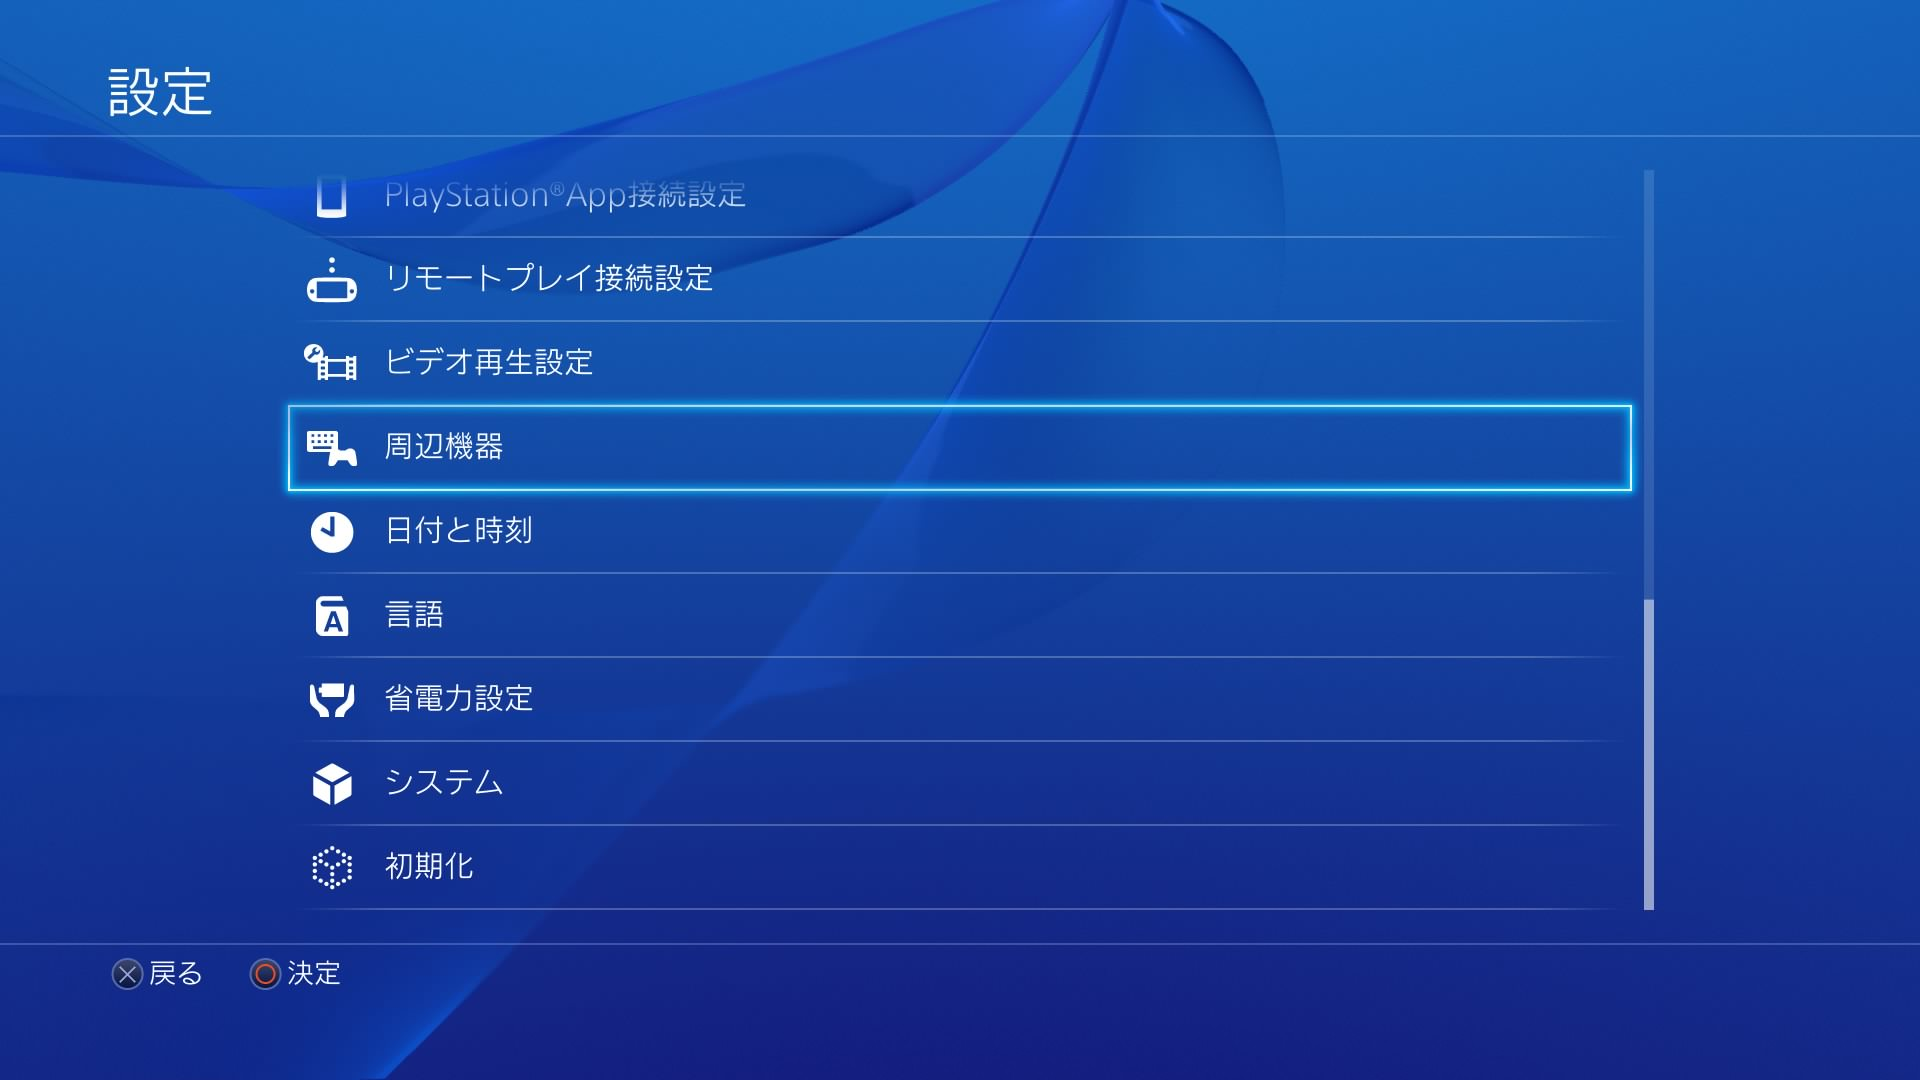 How to adjust to luminous energy of controller for playstation 4 02